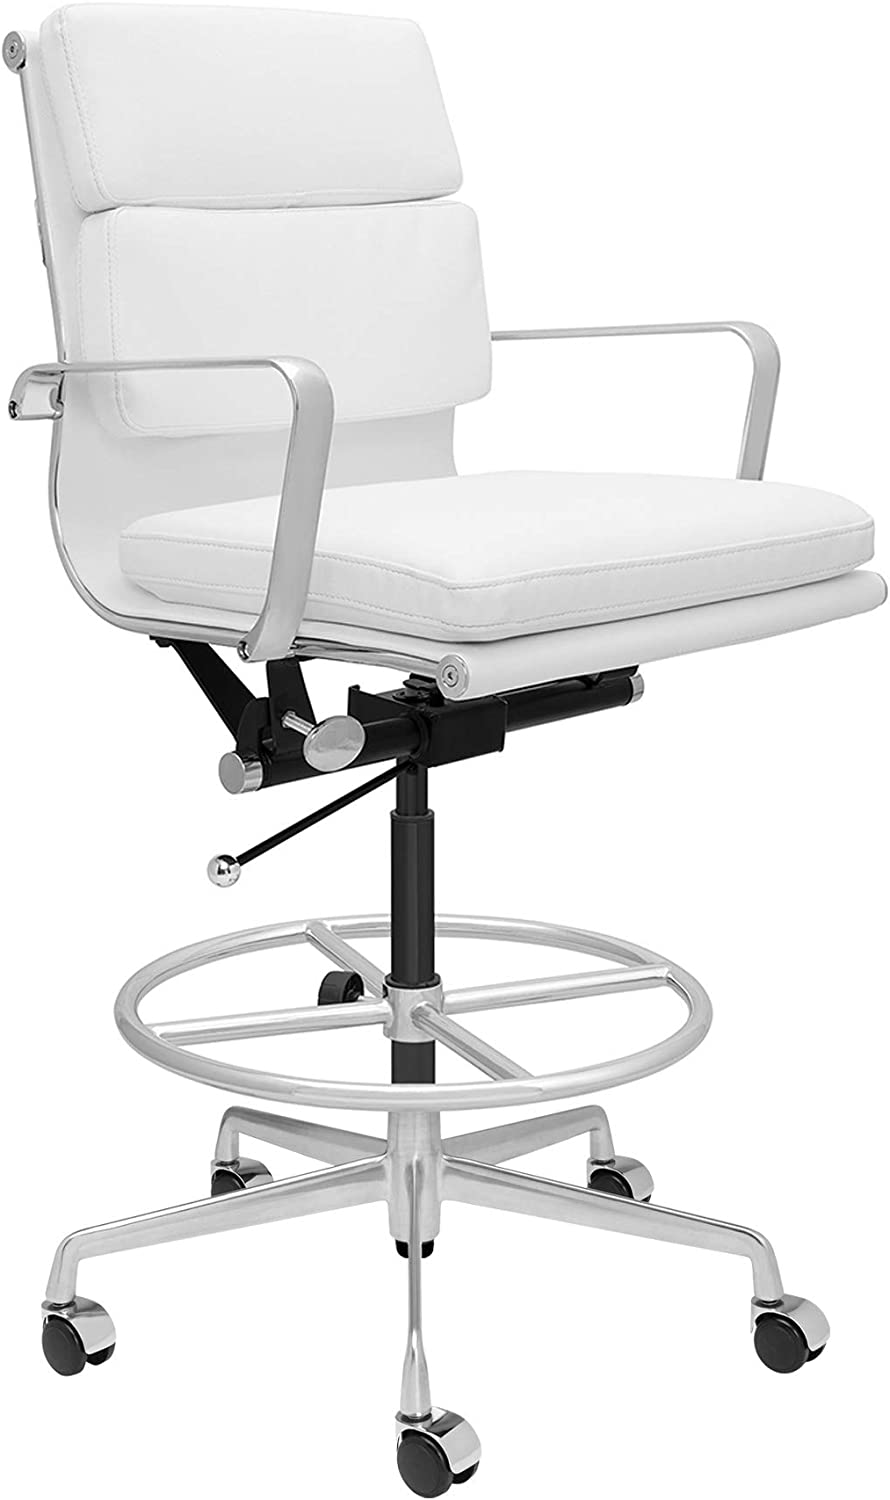 SOHO Soft Pad Drafting Chair - Ergonomically Designed and Commercial Grade Draft Height for Standing Desks (White)